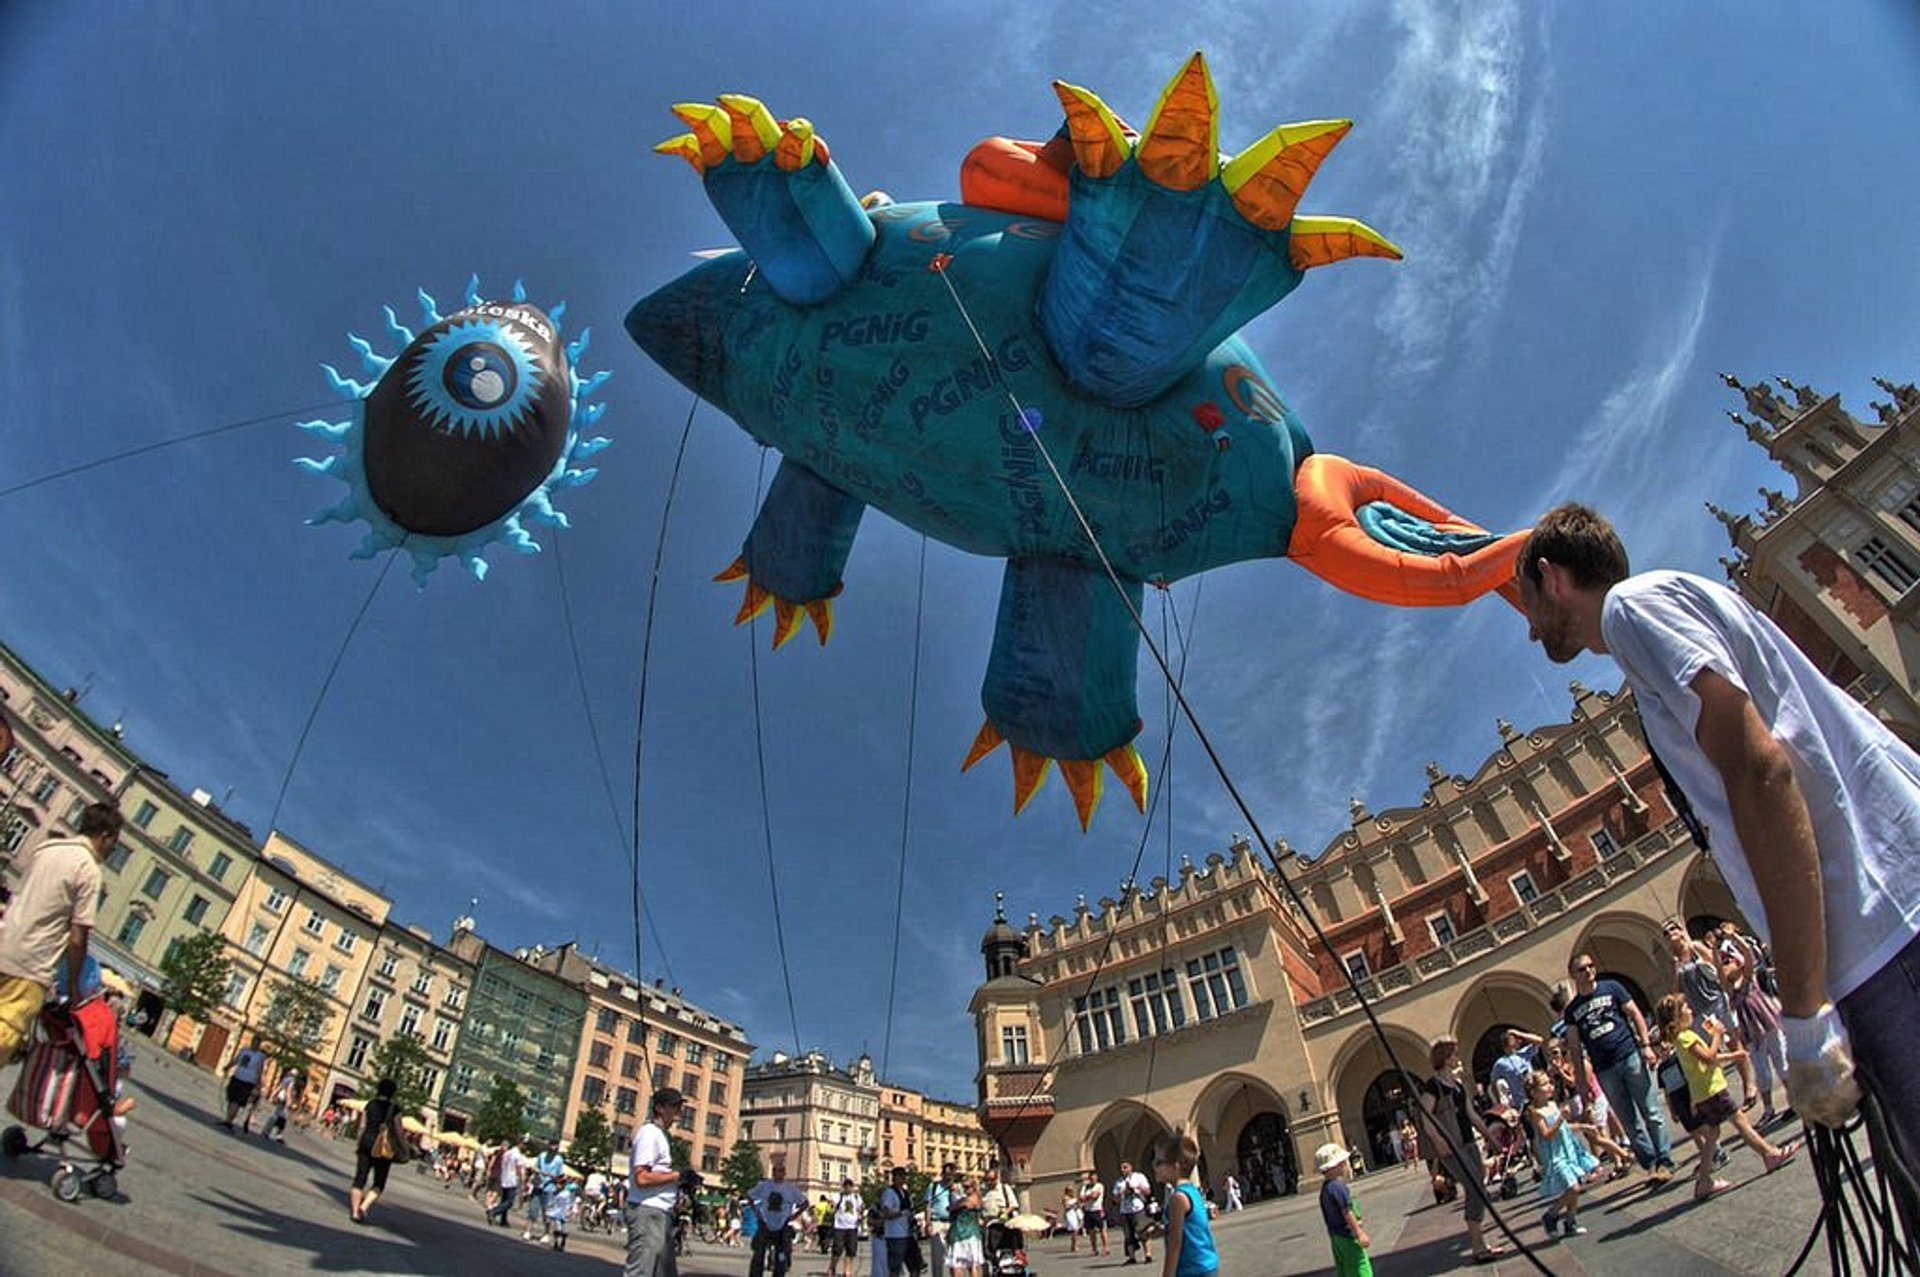 Dragon Parade in Krakow 2020 - Best Time